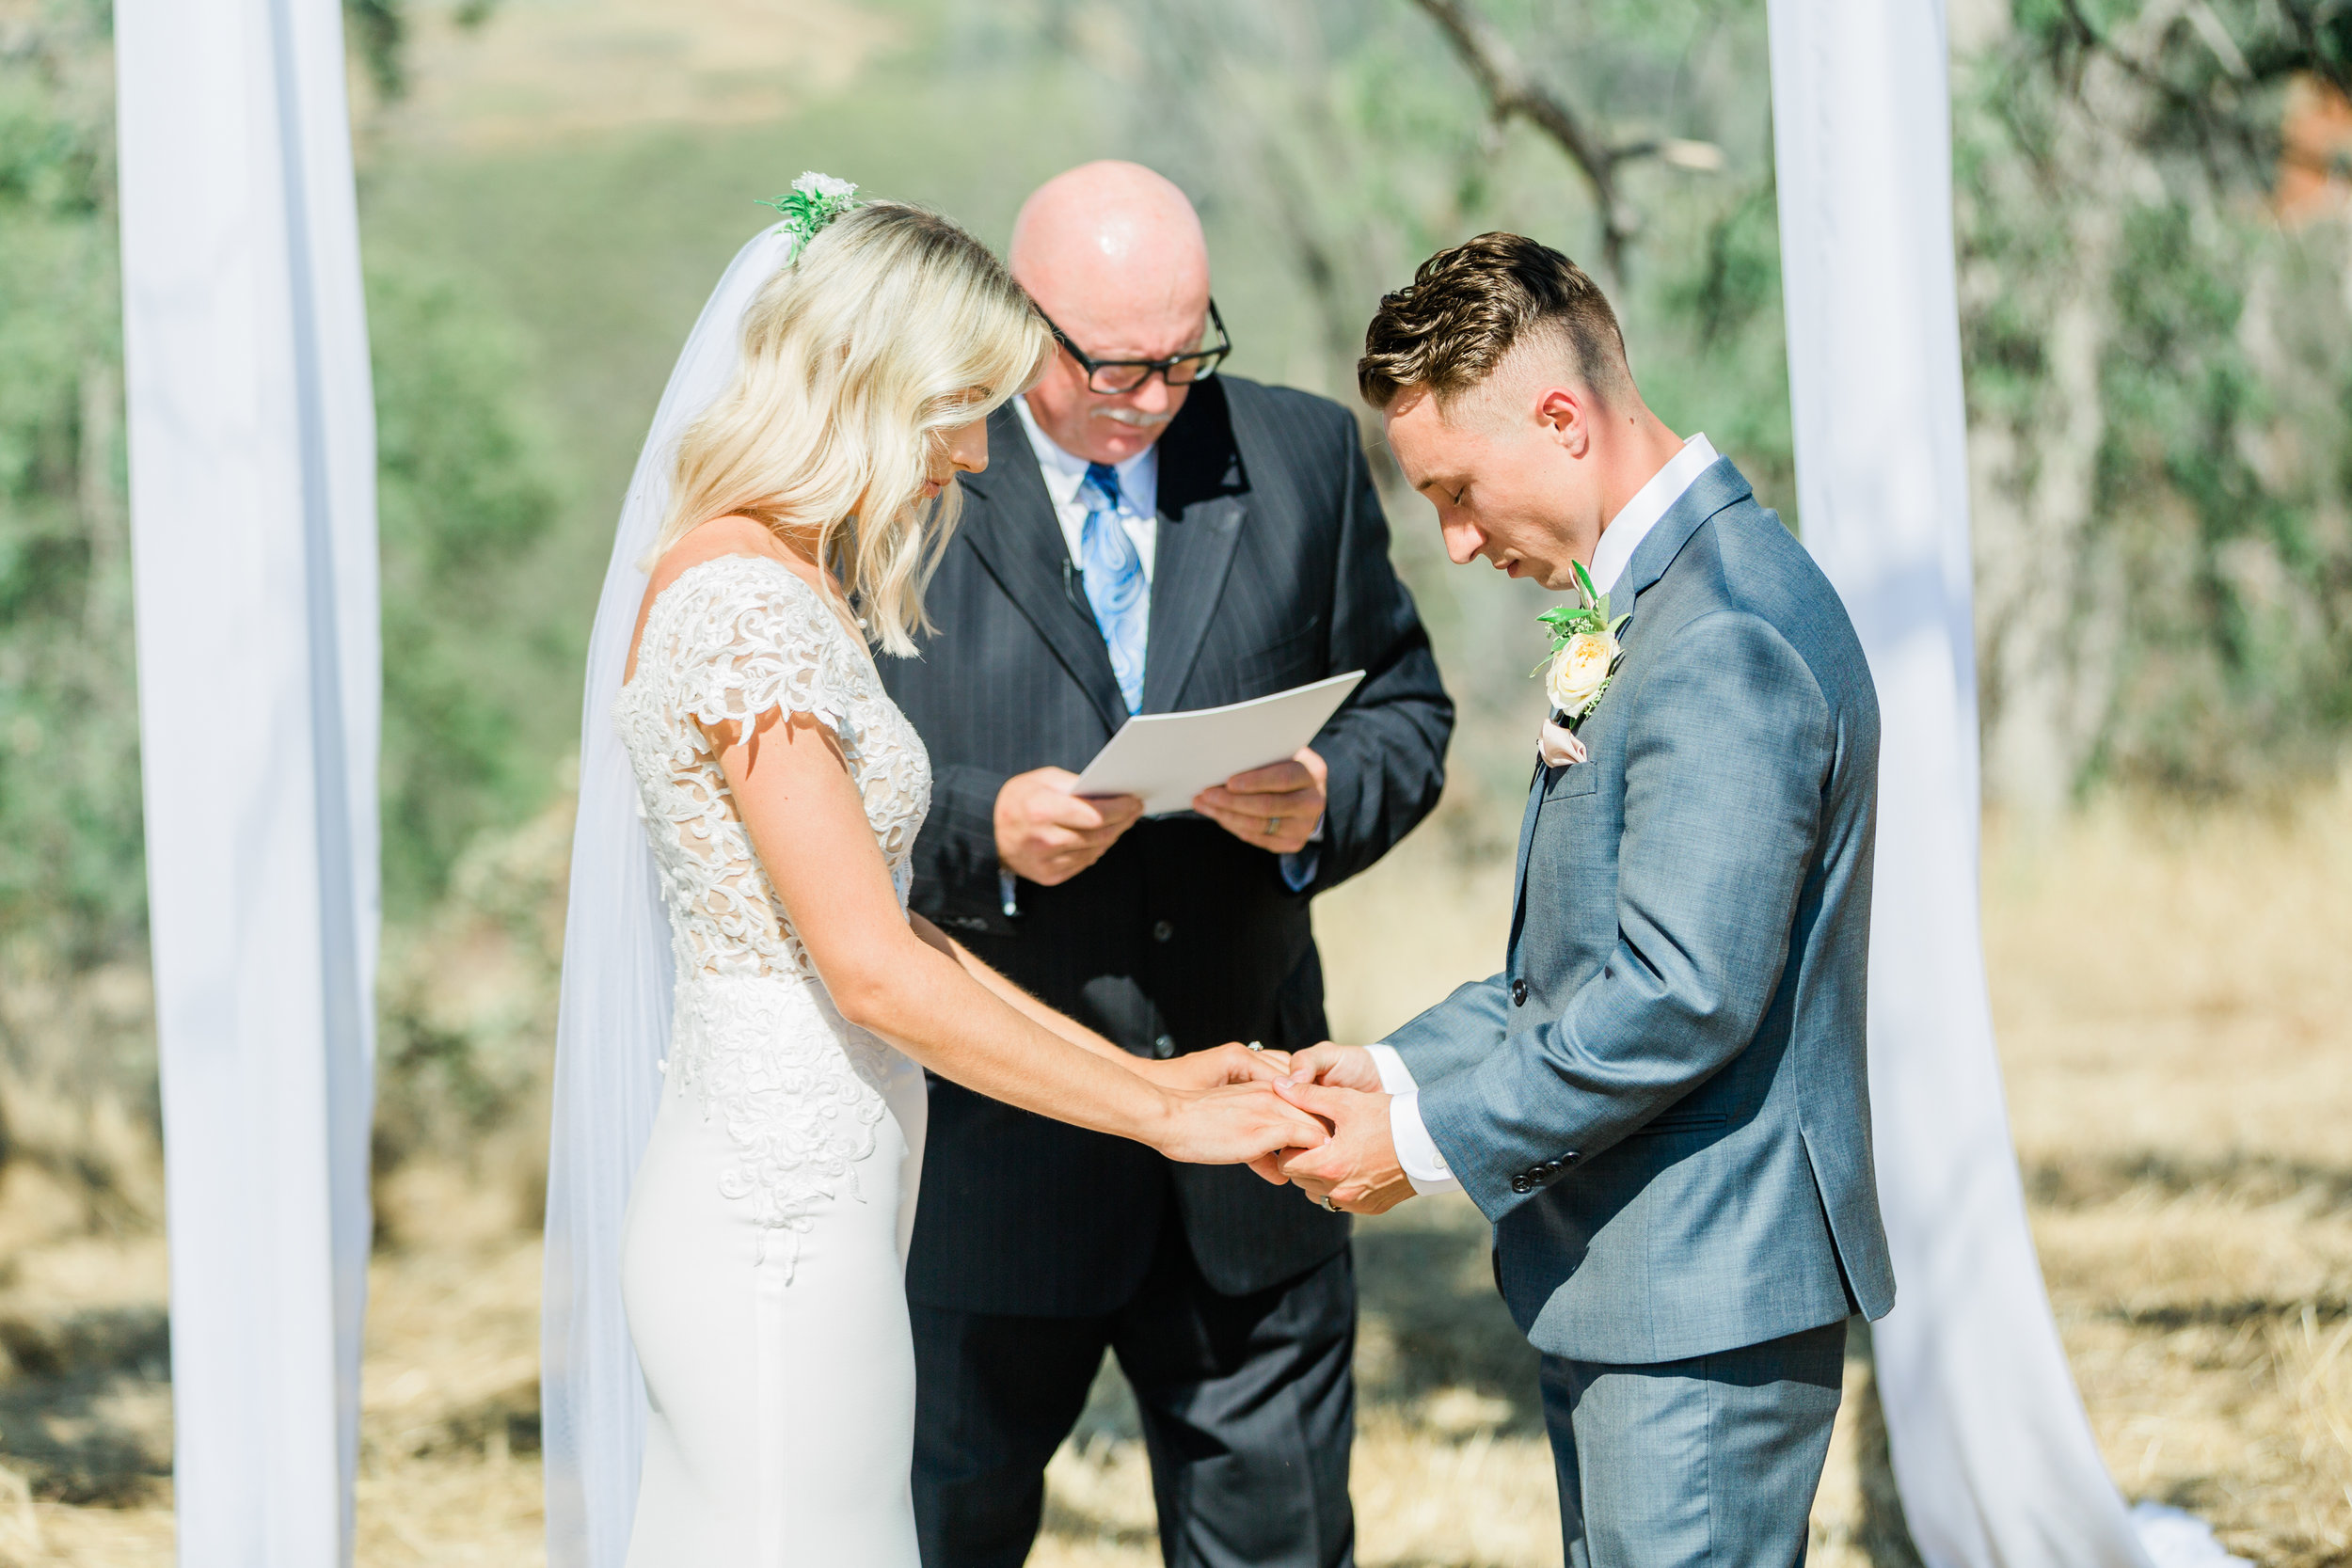 Kaitlynn and Colby - Married - Sneaks - Lauren Alisse Photography-56.jpg